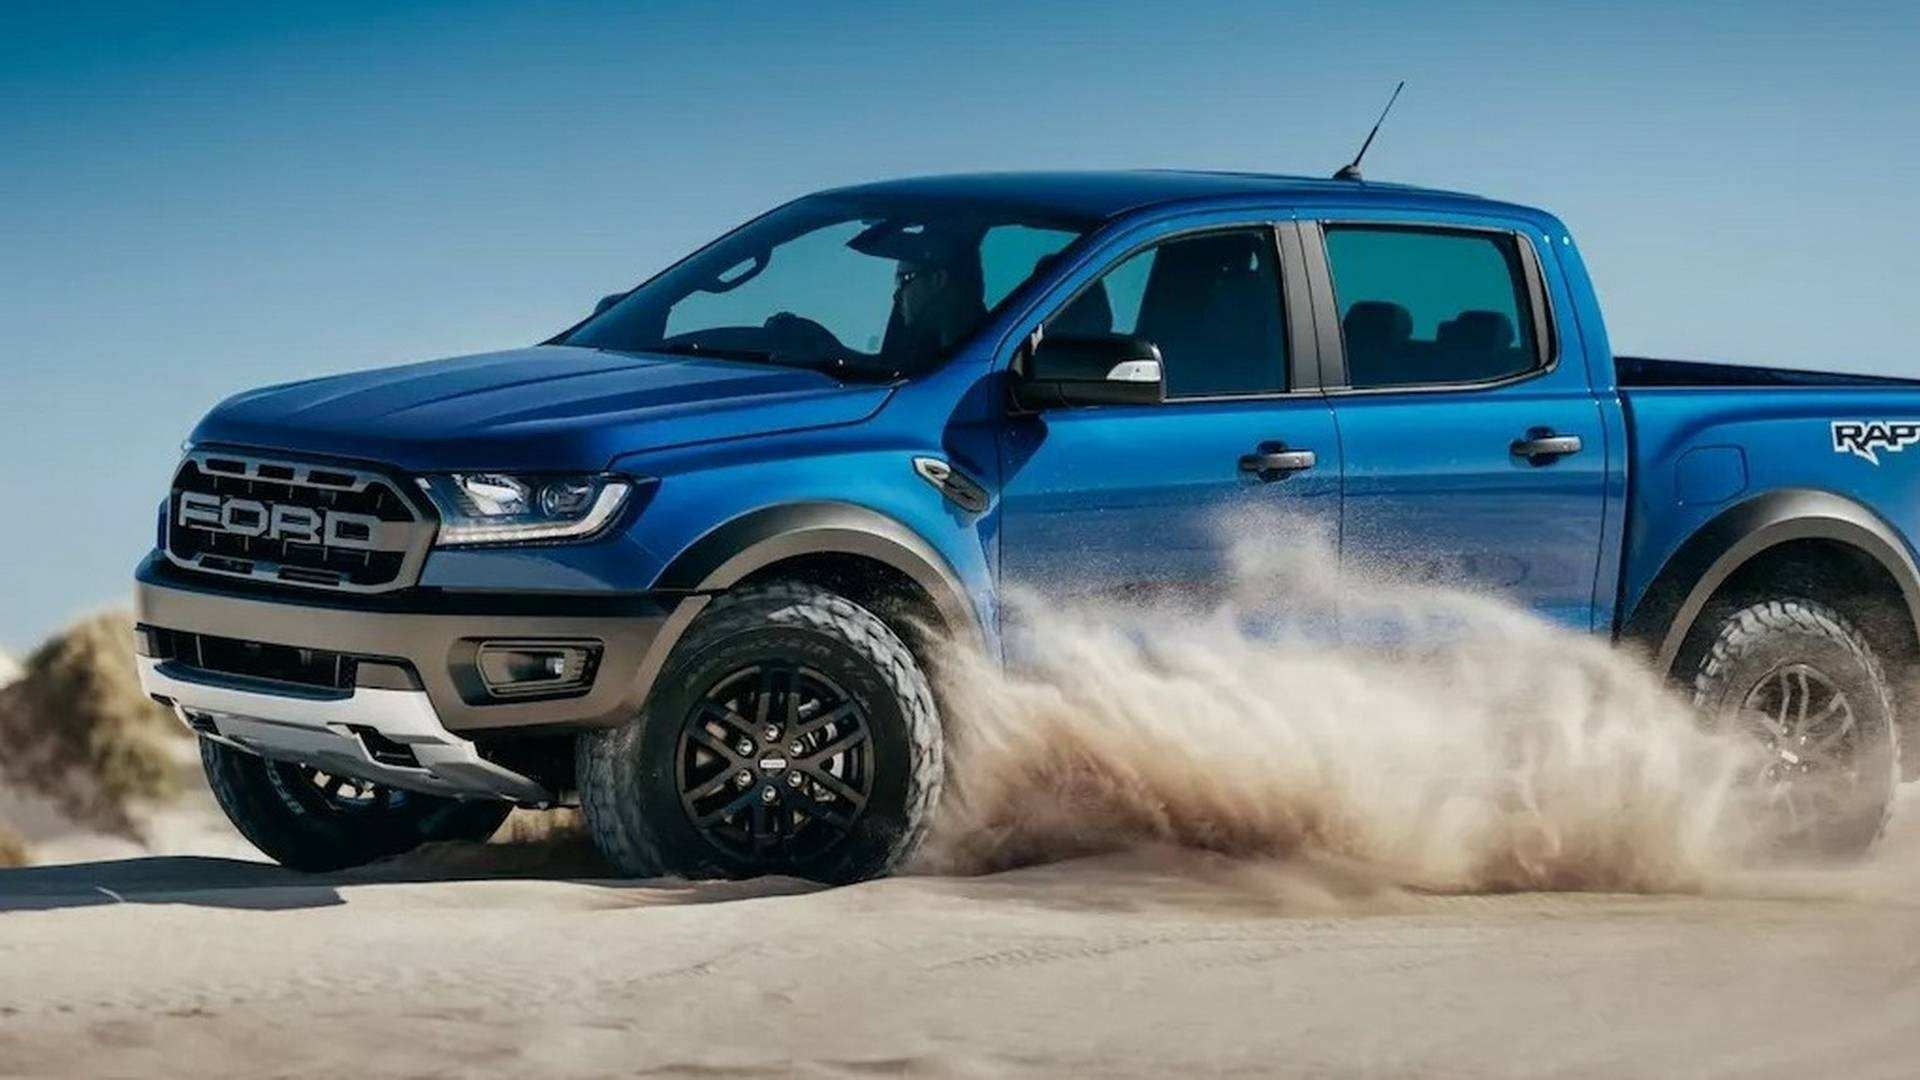 62 The Best 2019 Ford Svt Bronco Raptor Price Design And Review